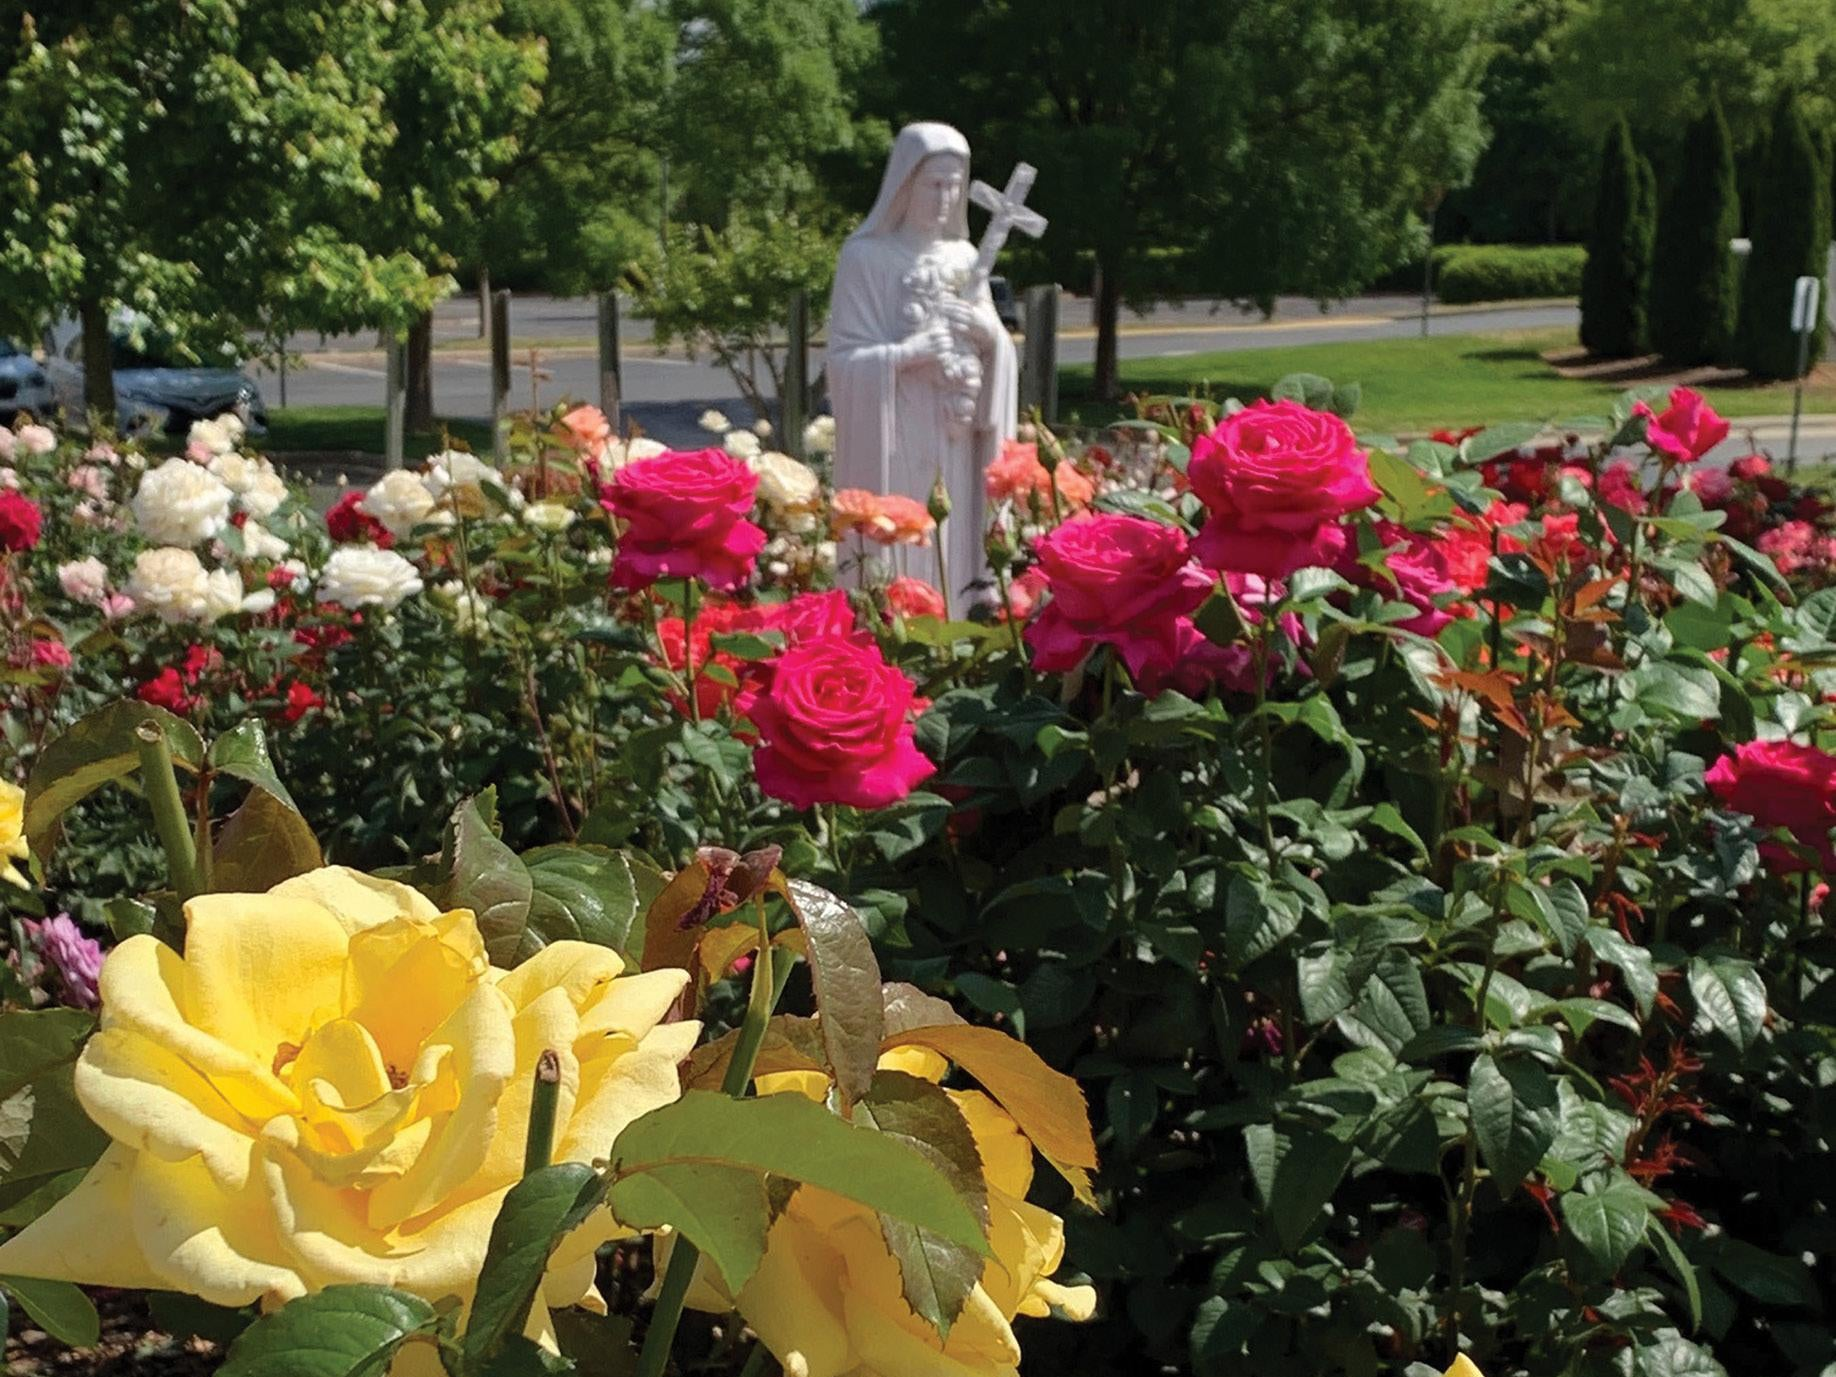 Page 6 of Rose Garden Guild Ministry Fosters the Beauty of Our Church While Honoring St. Therese